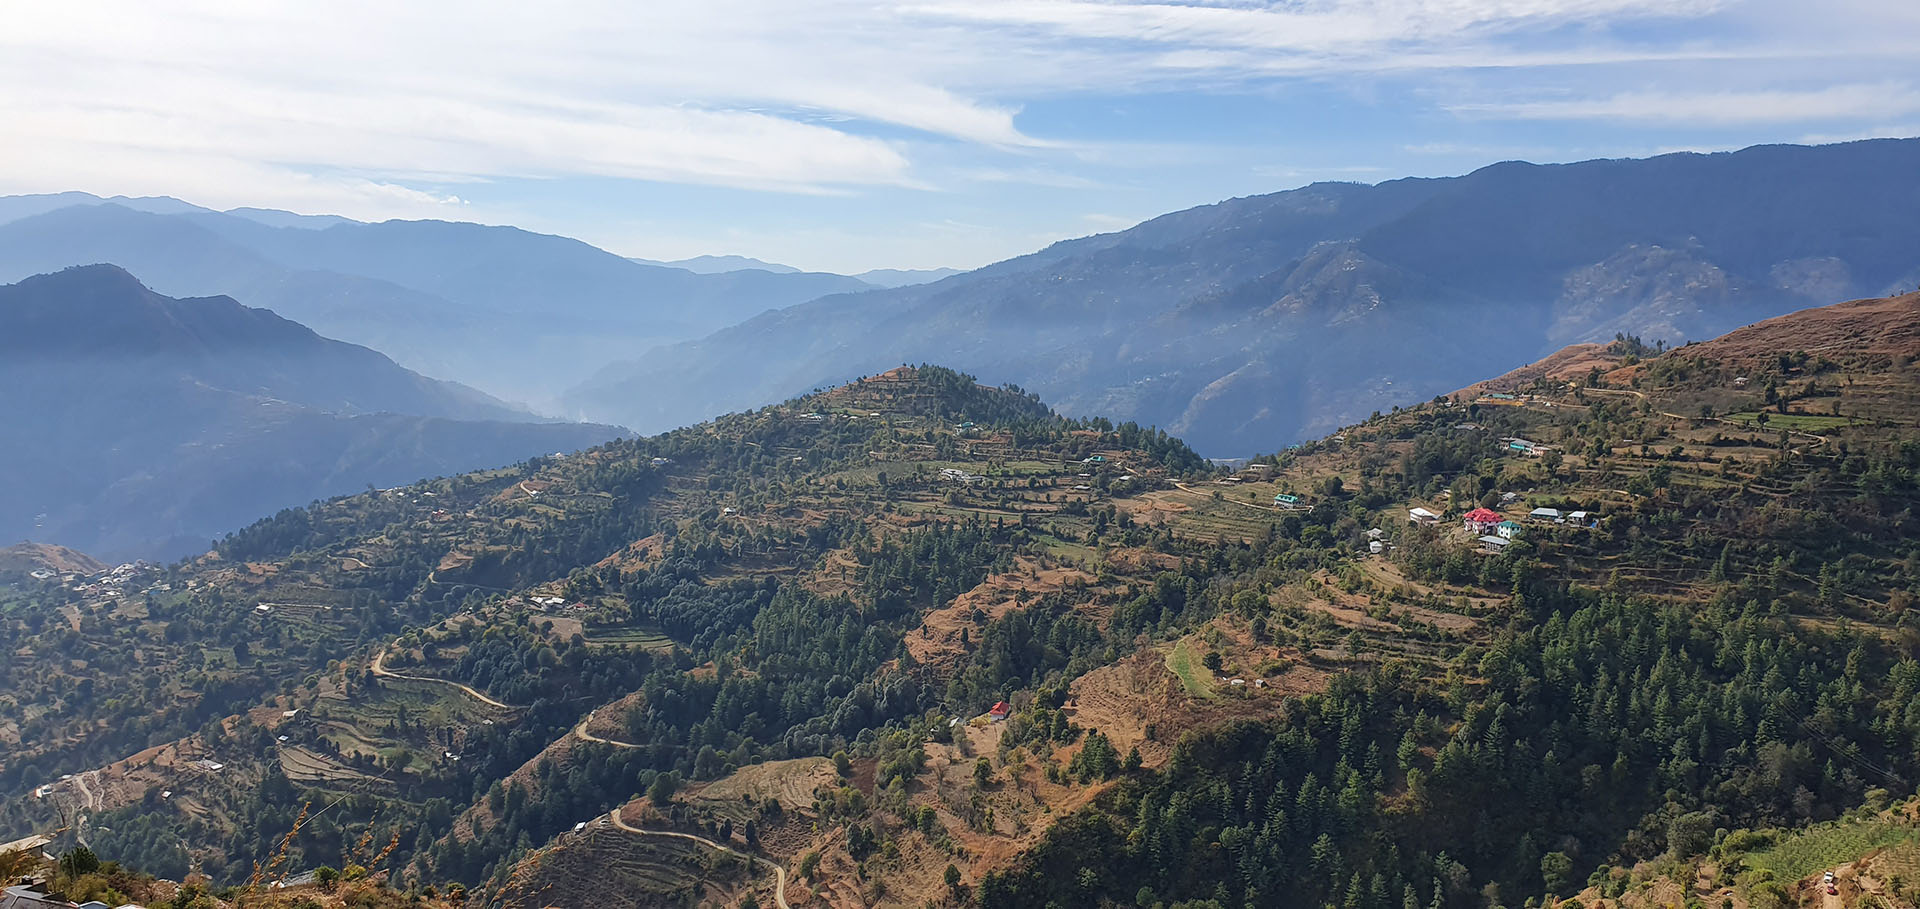 Terraces with apple trees in remote India